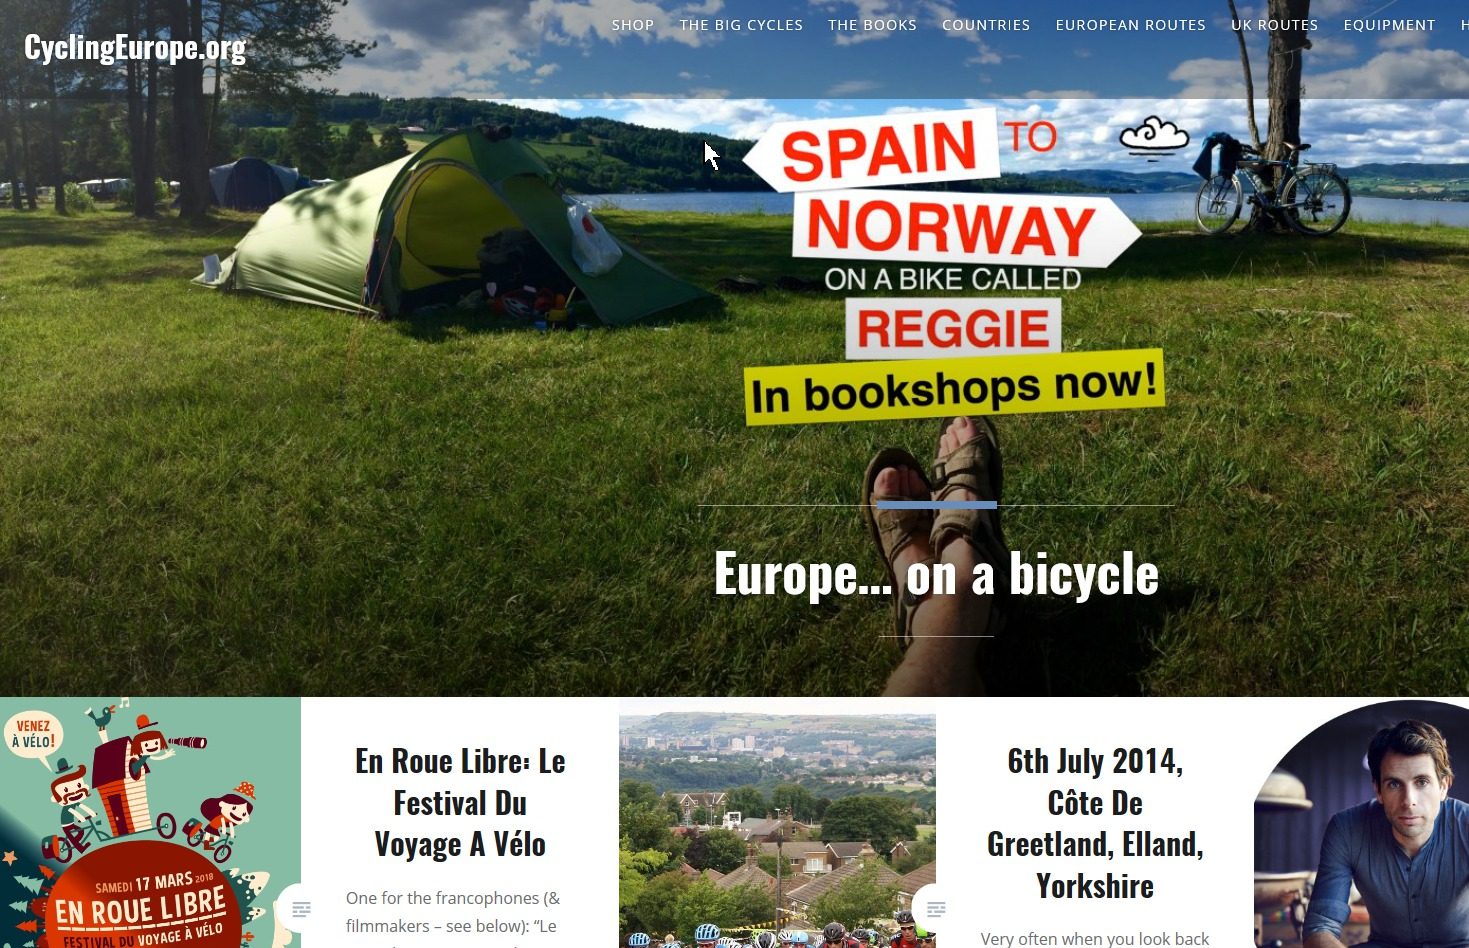 https://cyclingeurope.org/